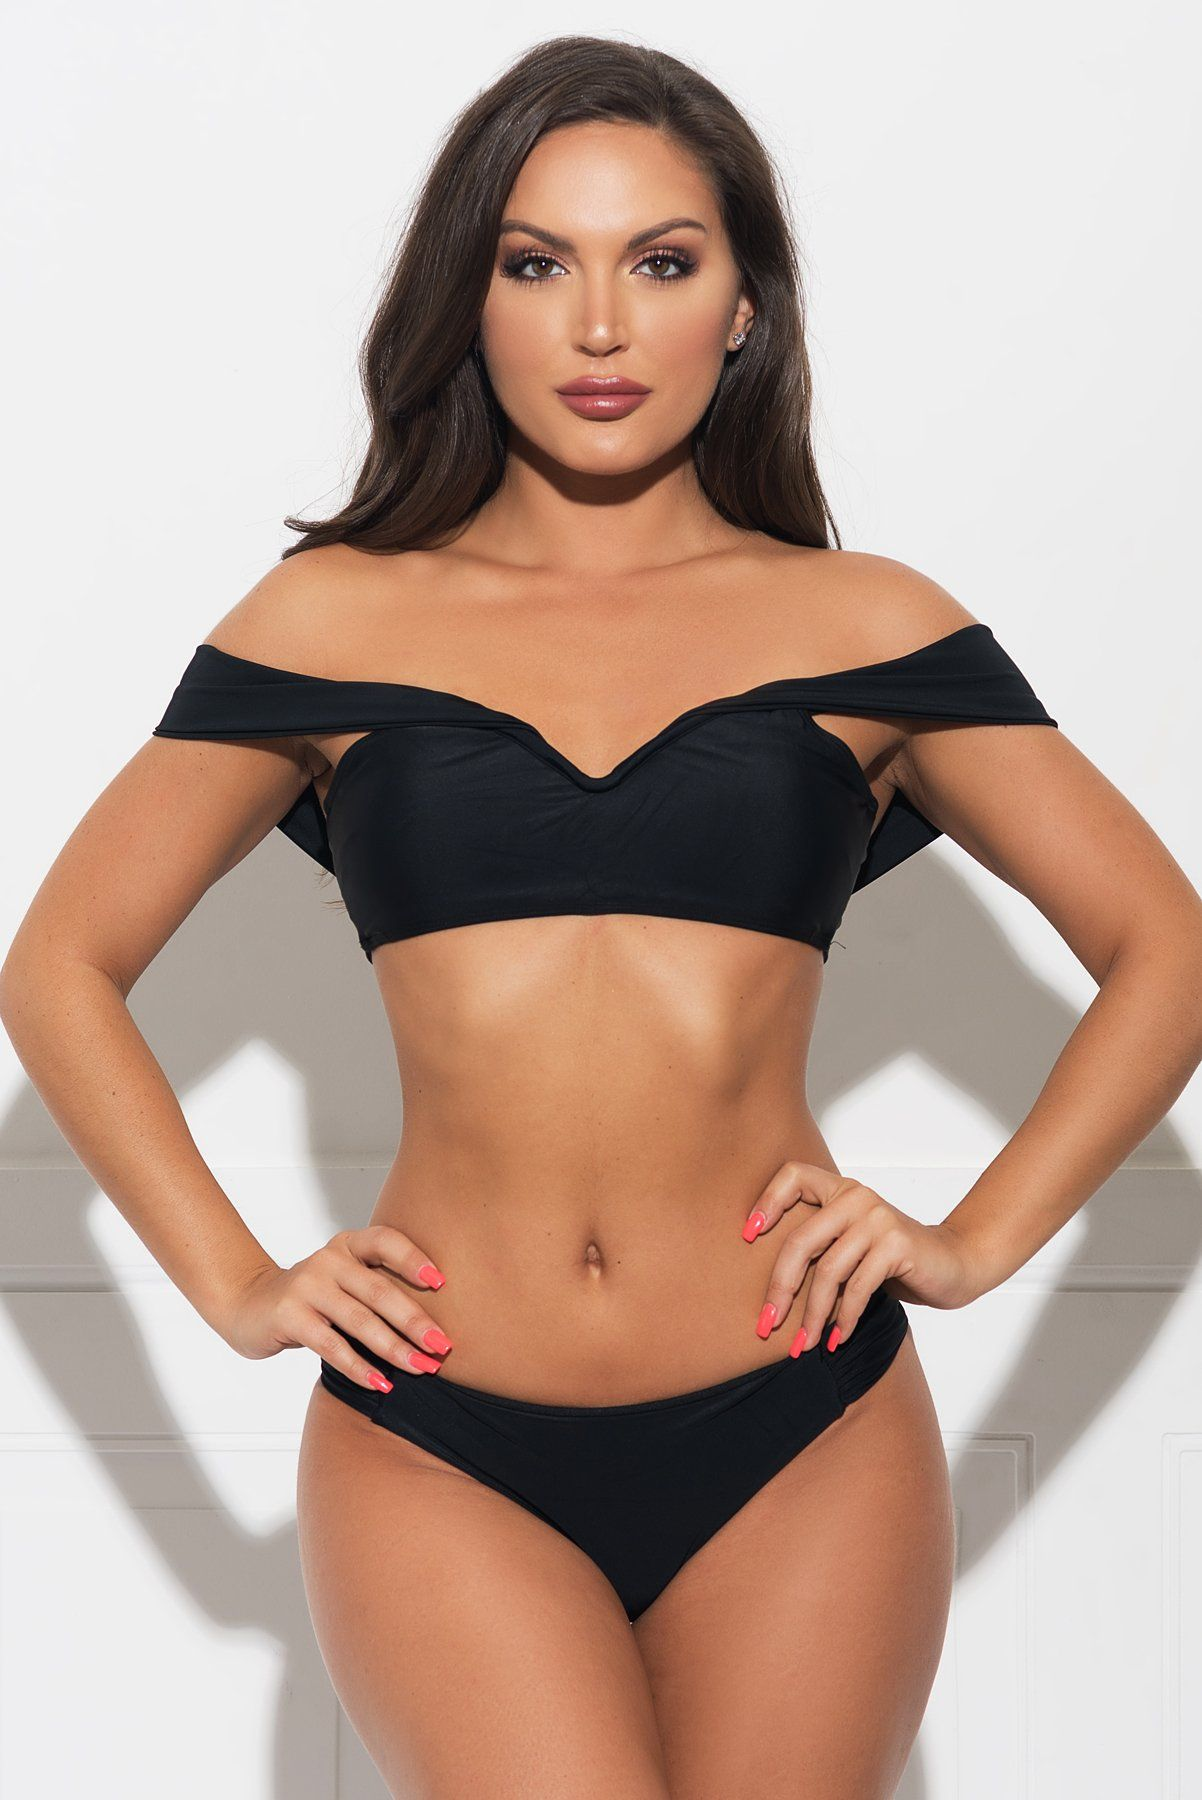 Honeymoon Island Two Piece Swimsuit Black Jusflippin With Dimes